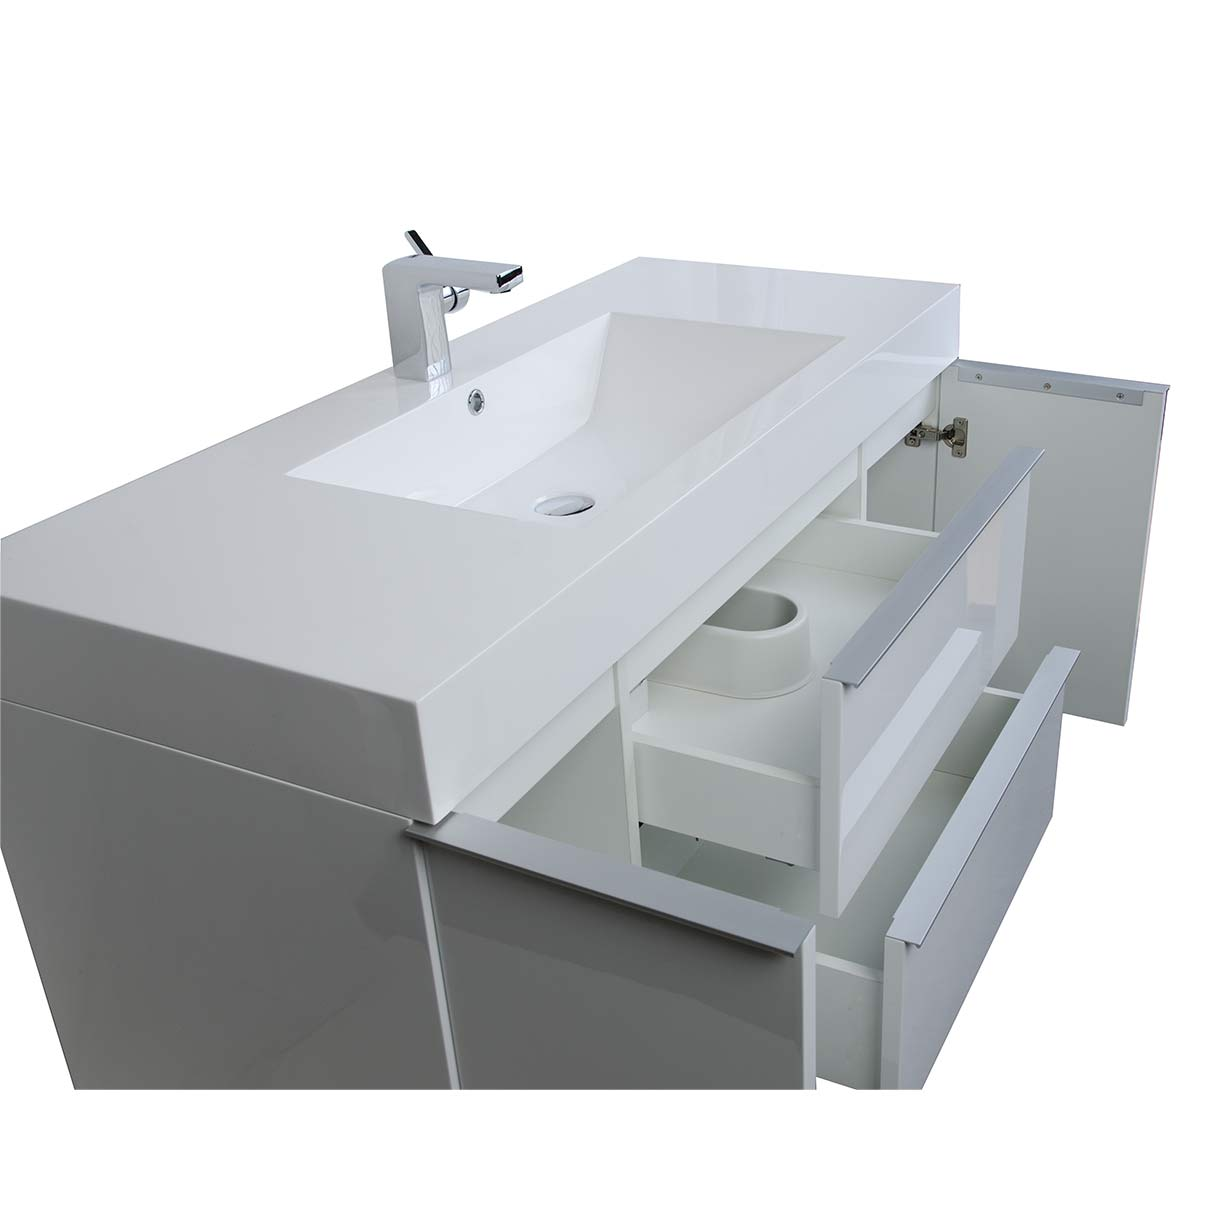 47.25 Inch Wall Mount Contemporary Bathroom Vanity Glossy White RS ...